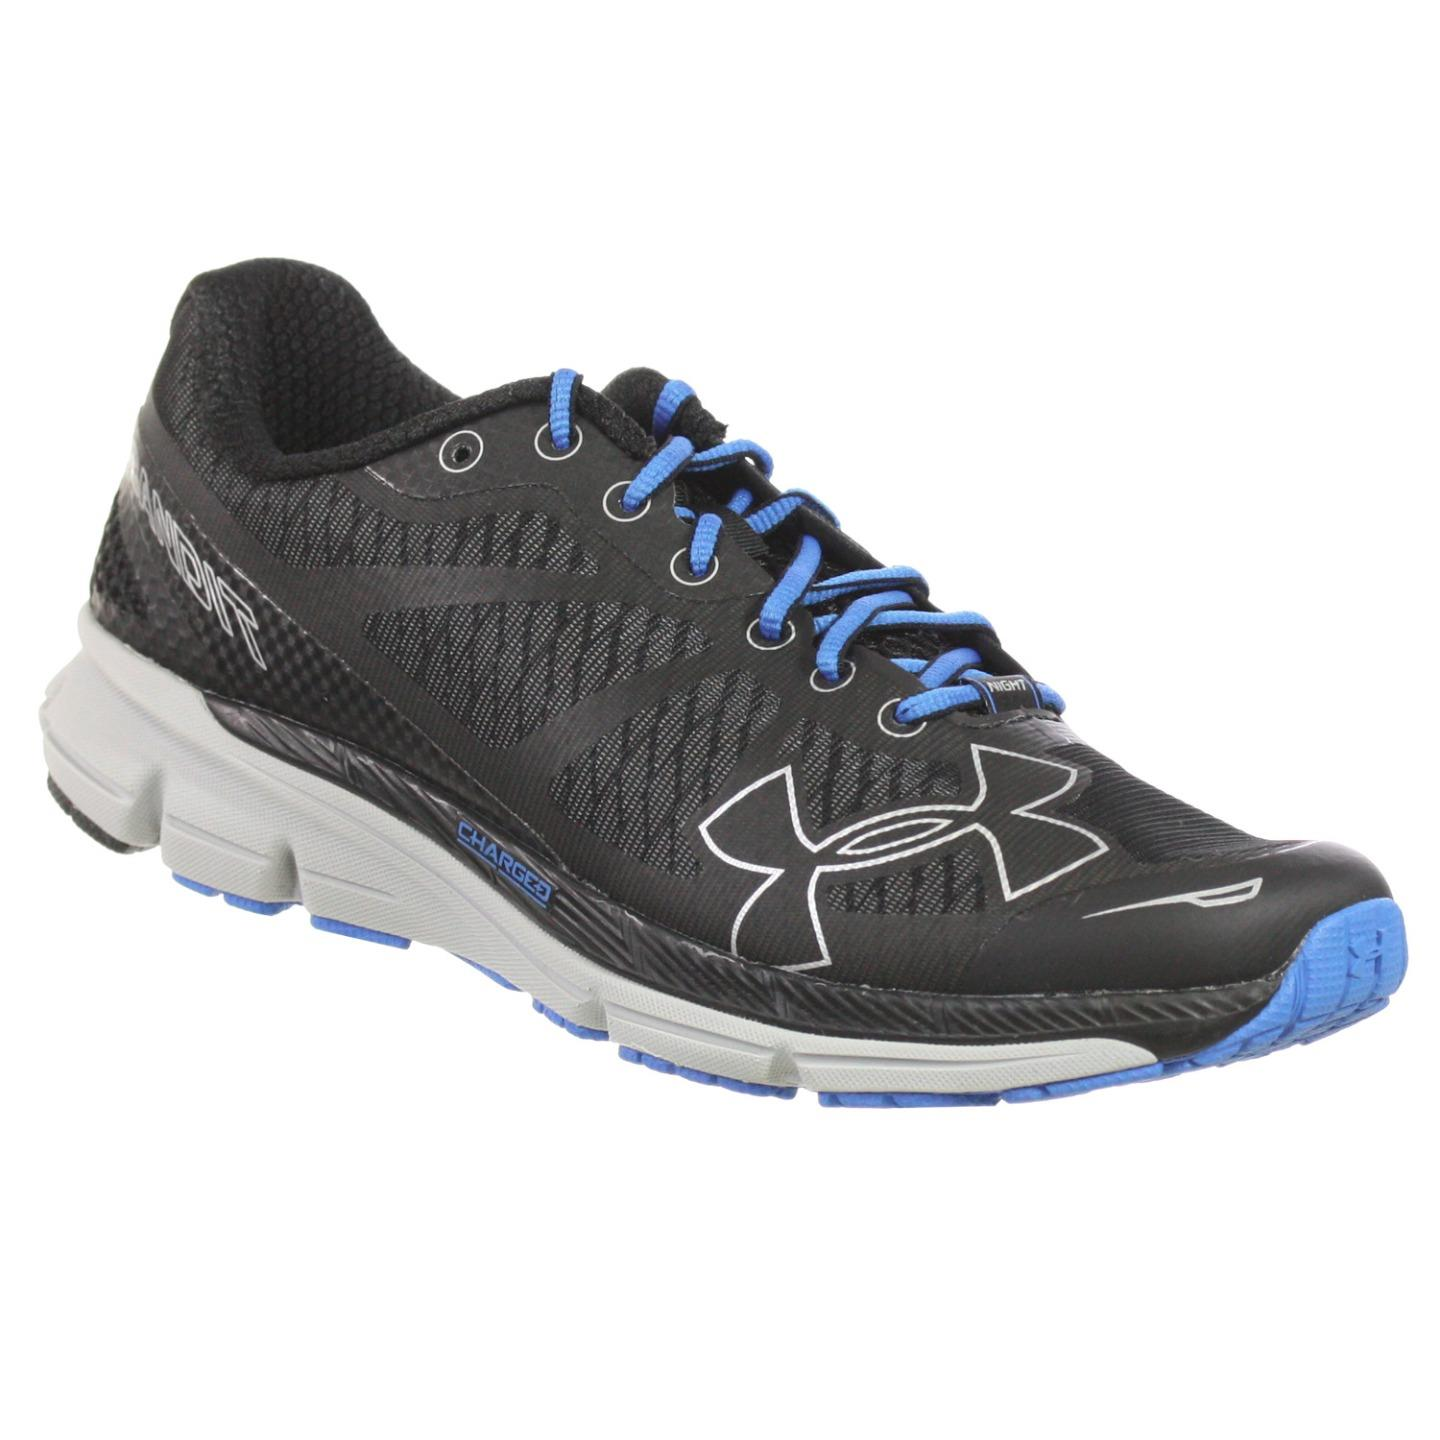 3754aba4800f UNDER ARMOUR MENS ATHLETIC SHOE CHARGED BANDIT NIGHT BLACK SILVER GREY  ROYAL 7 M